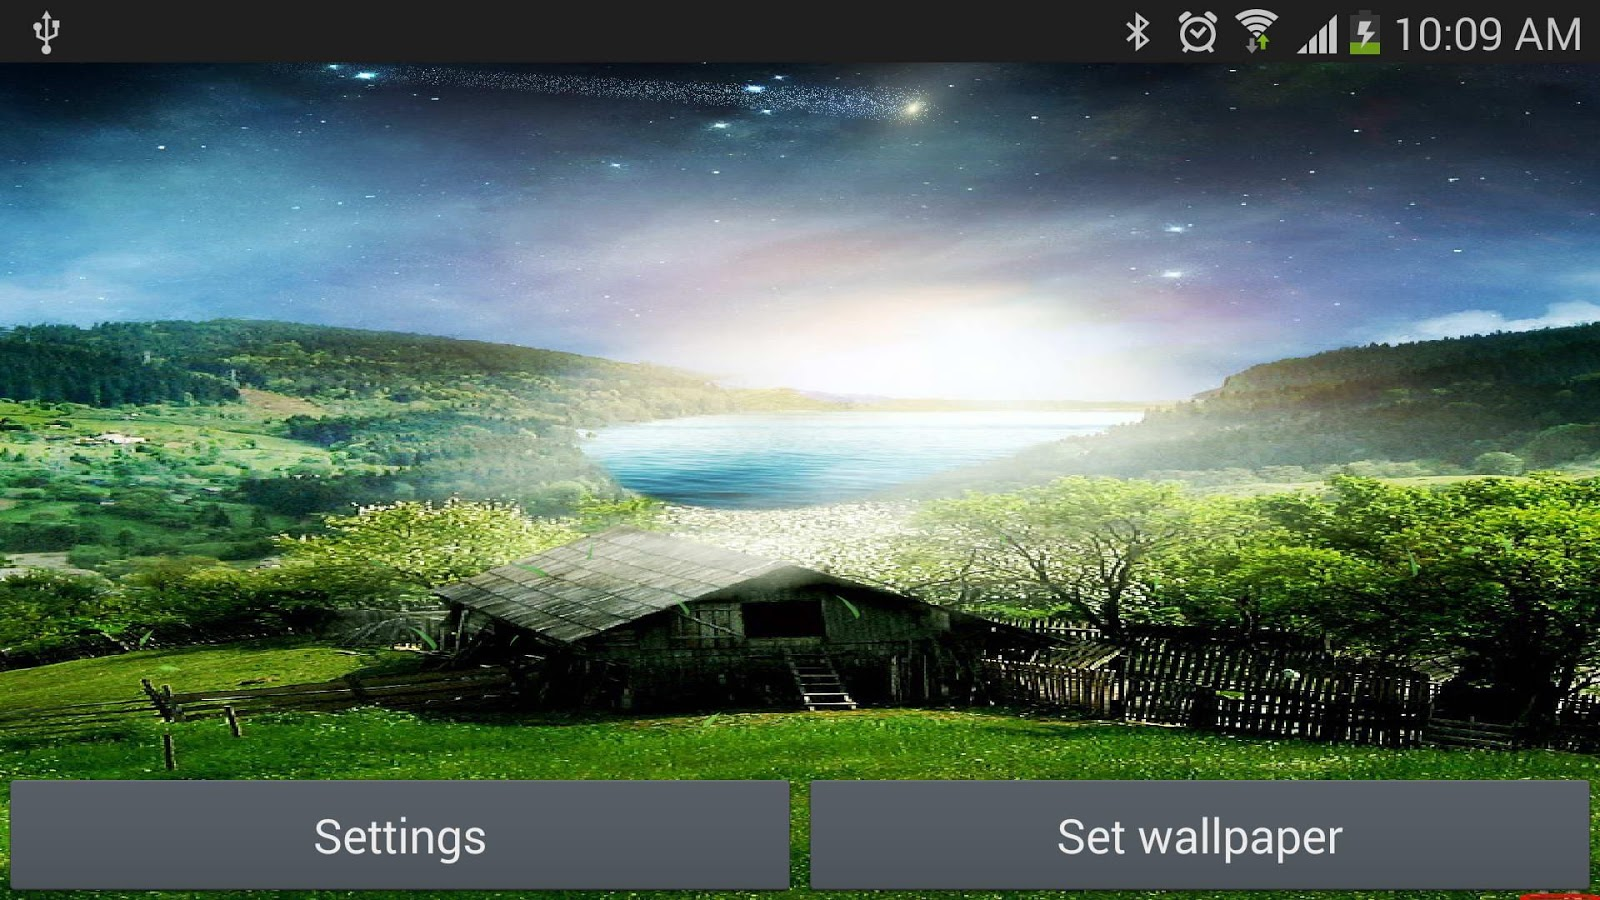 Posted By Shivan Zaxoy on Feb 22, 2014 in Live Wallpapers | 0 comments